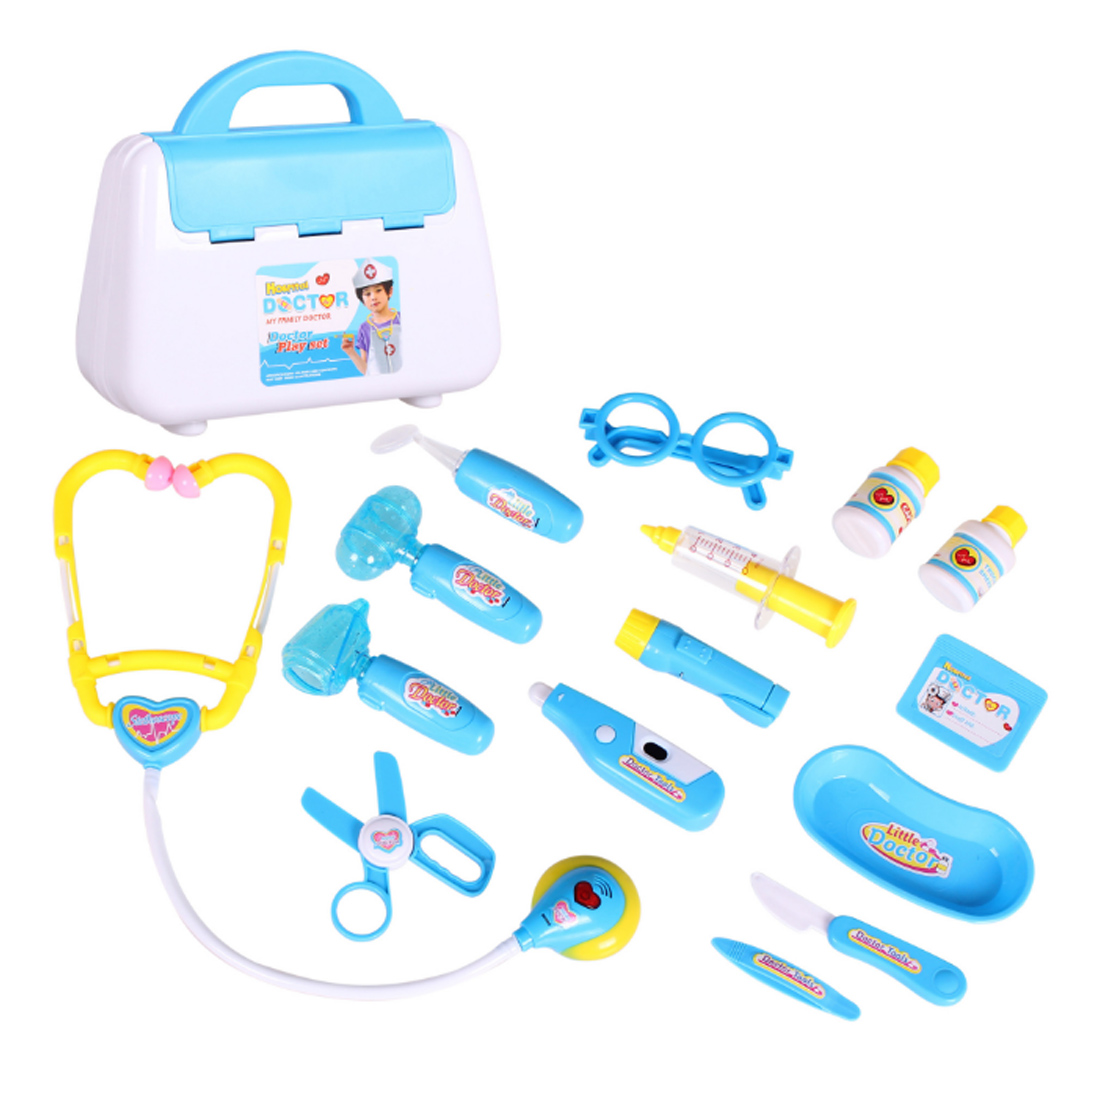 15Pcs Pretend Play Emulational Toy Kit Doctor Echometer Set with Sound Light Education Toys for Children Developing Interest